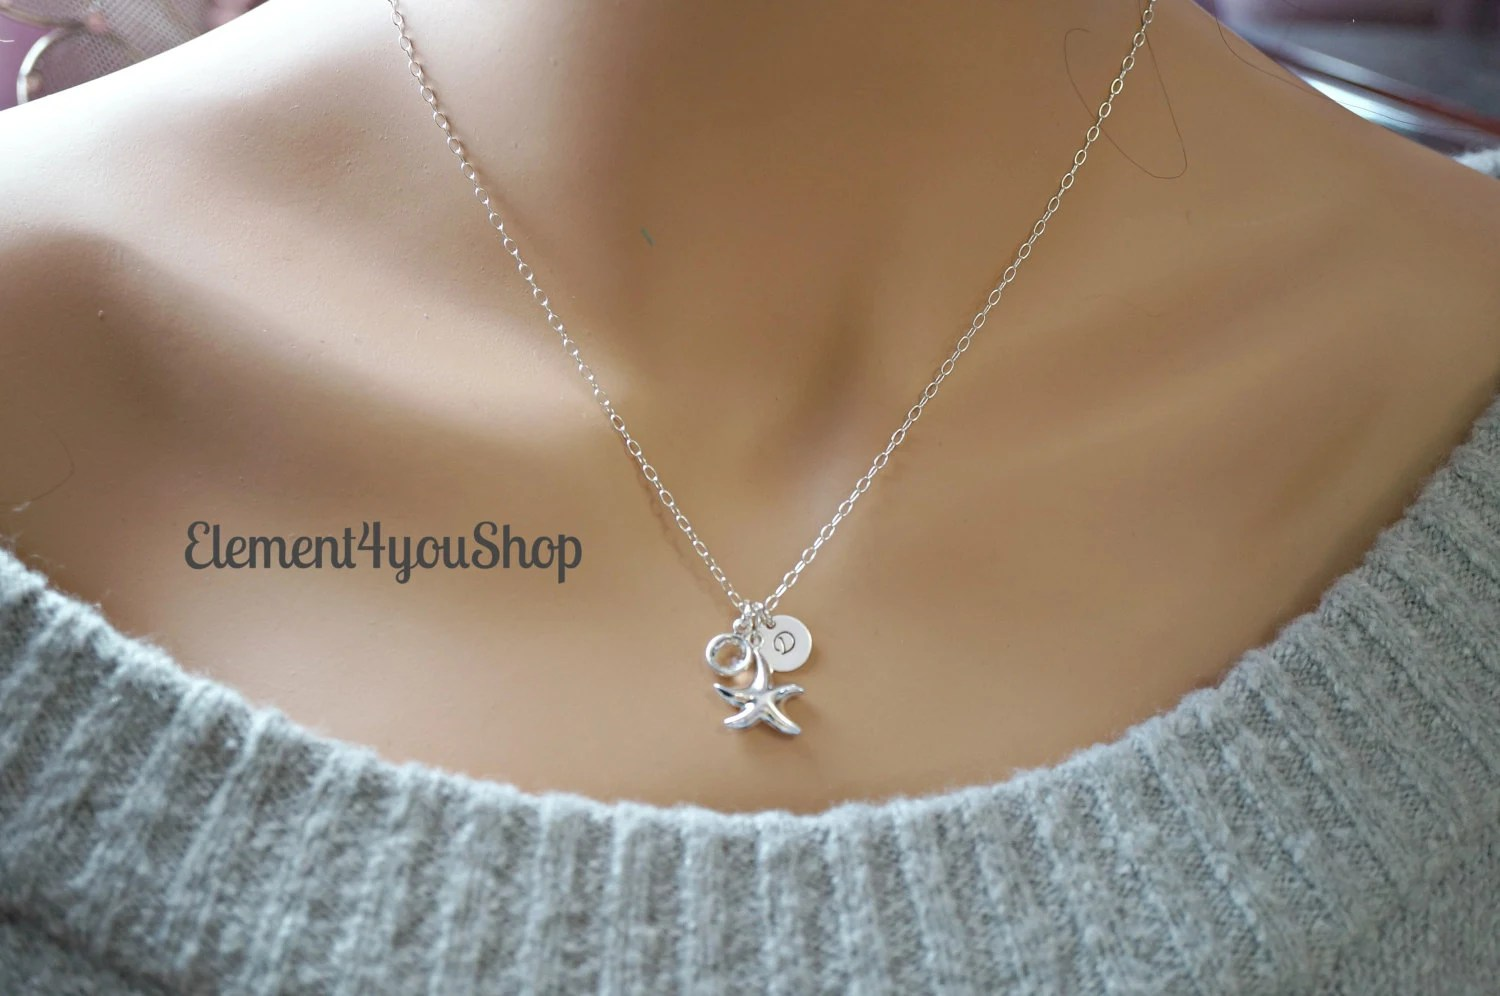 Bridesmaids Sterling Silver Starfish necklaces Personalize image 2